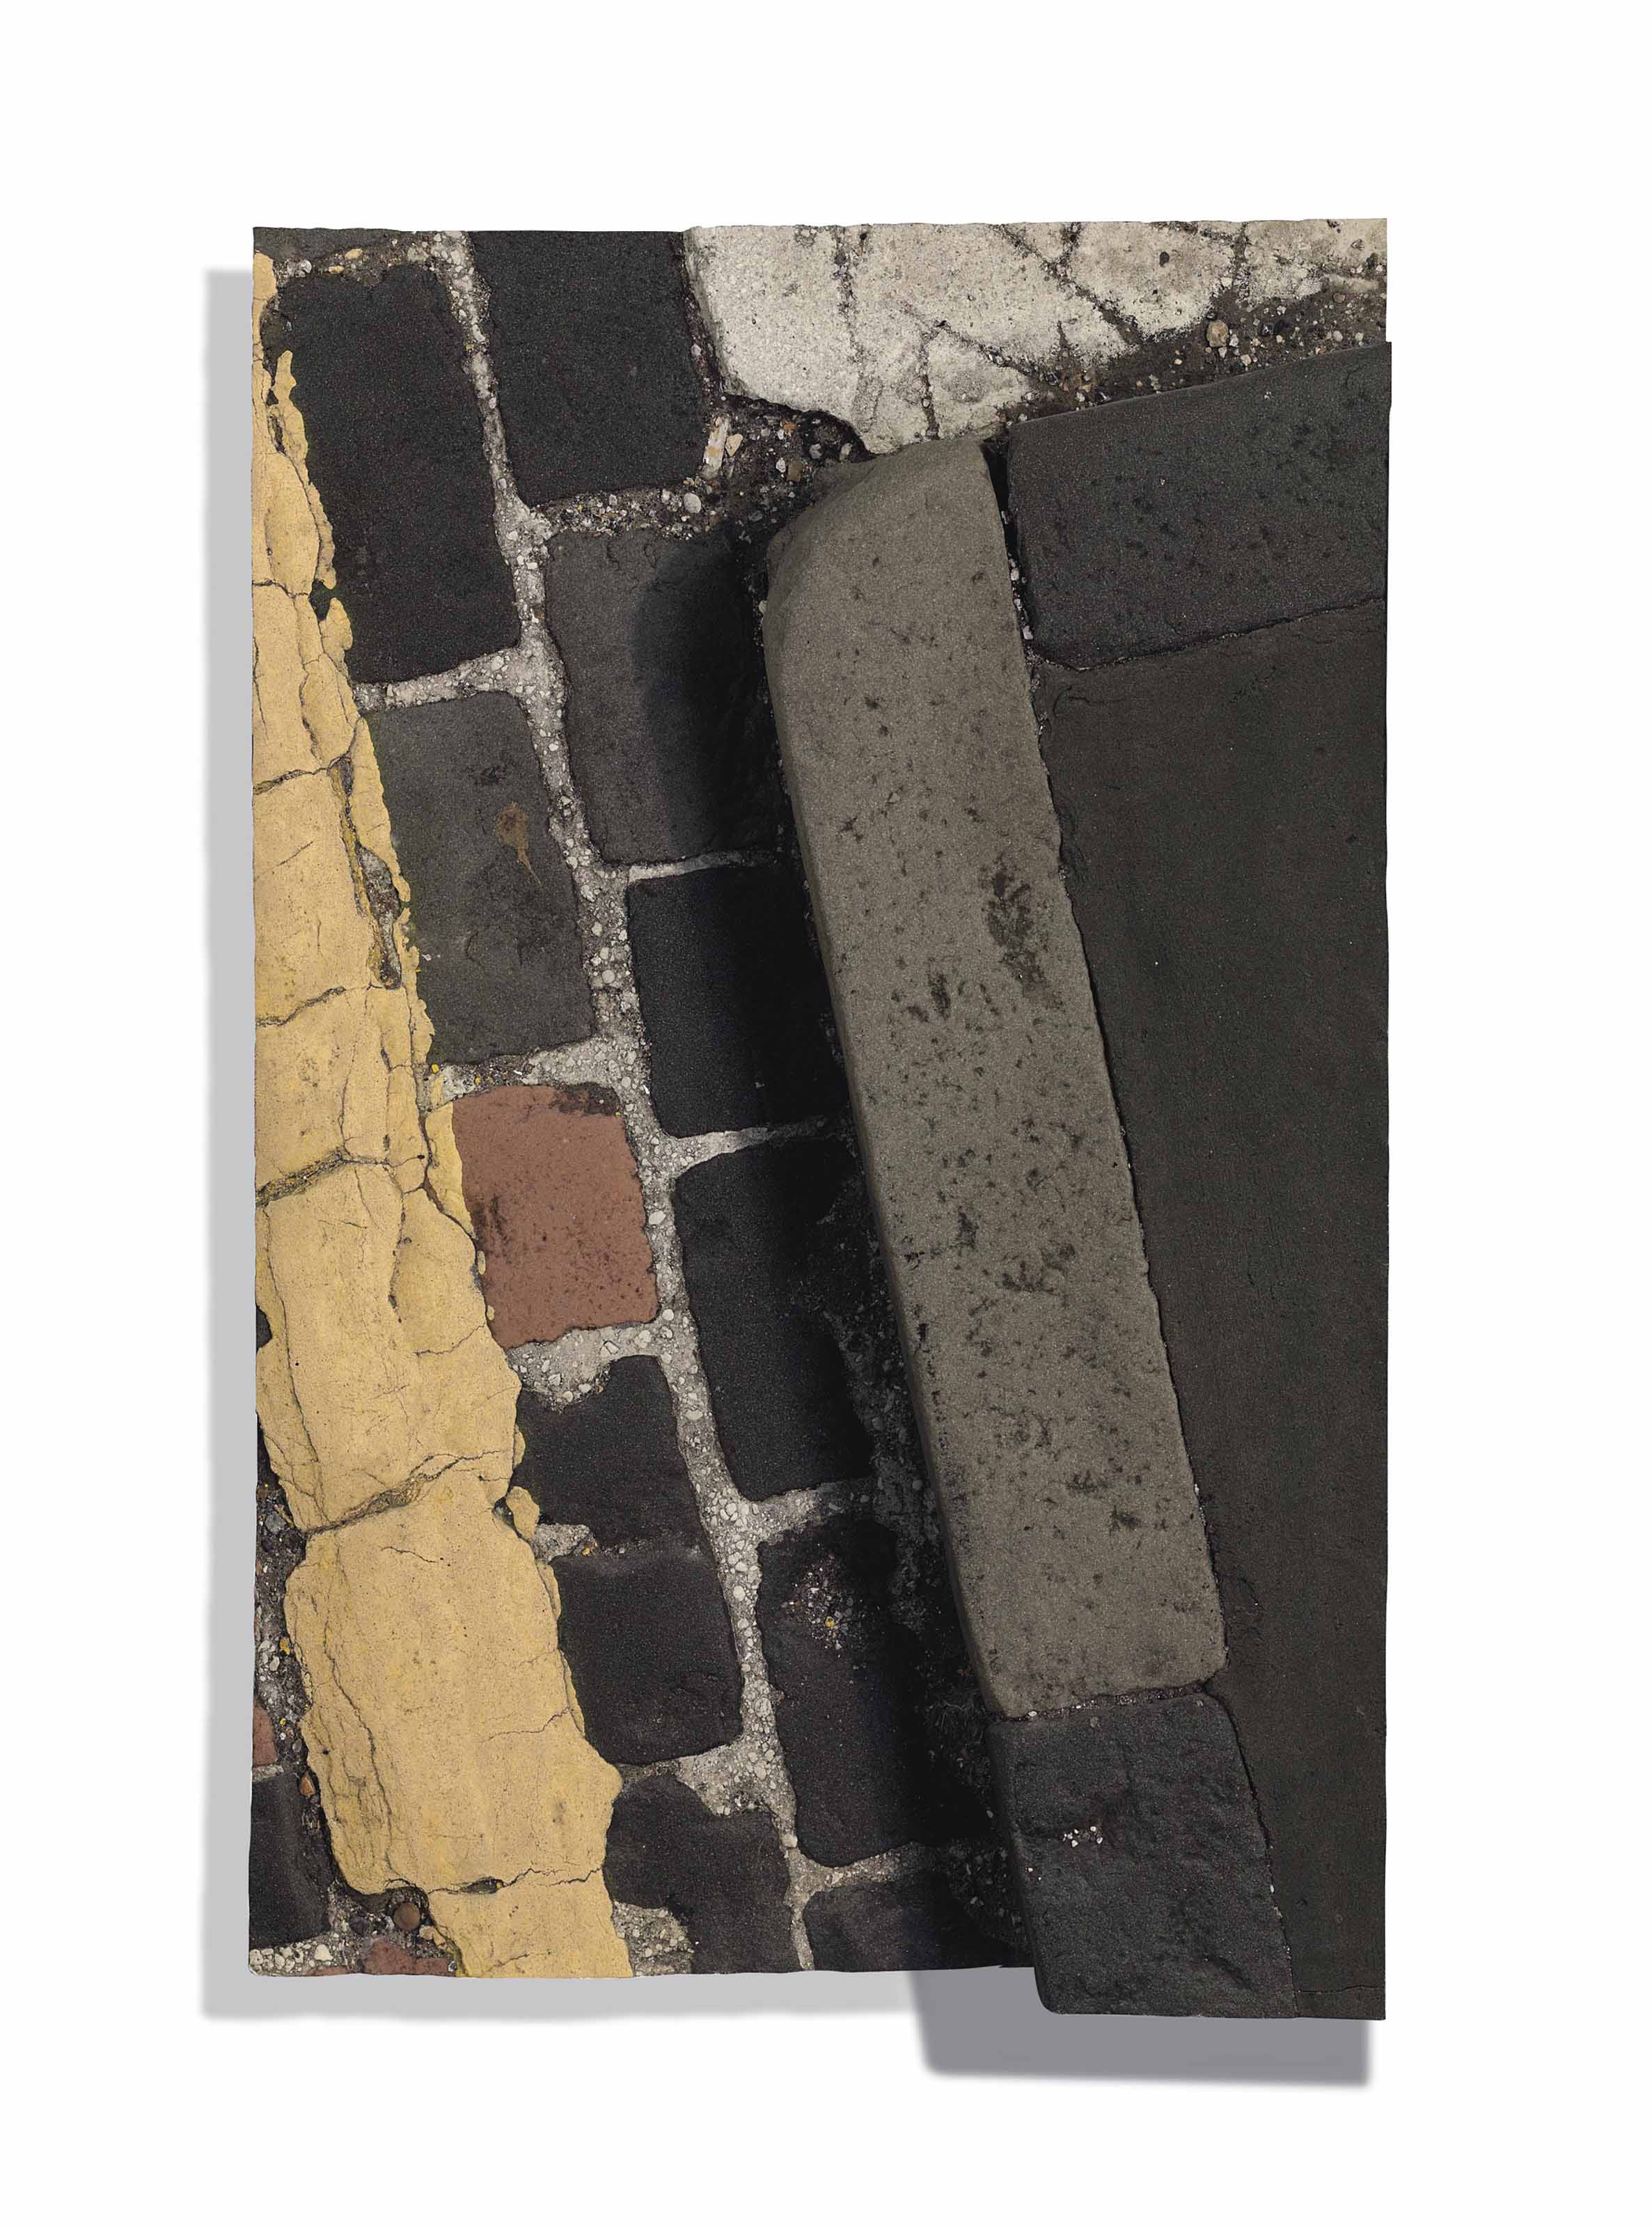 Study for Westminster Series with kerb, yellow parking line & cobbles